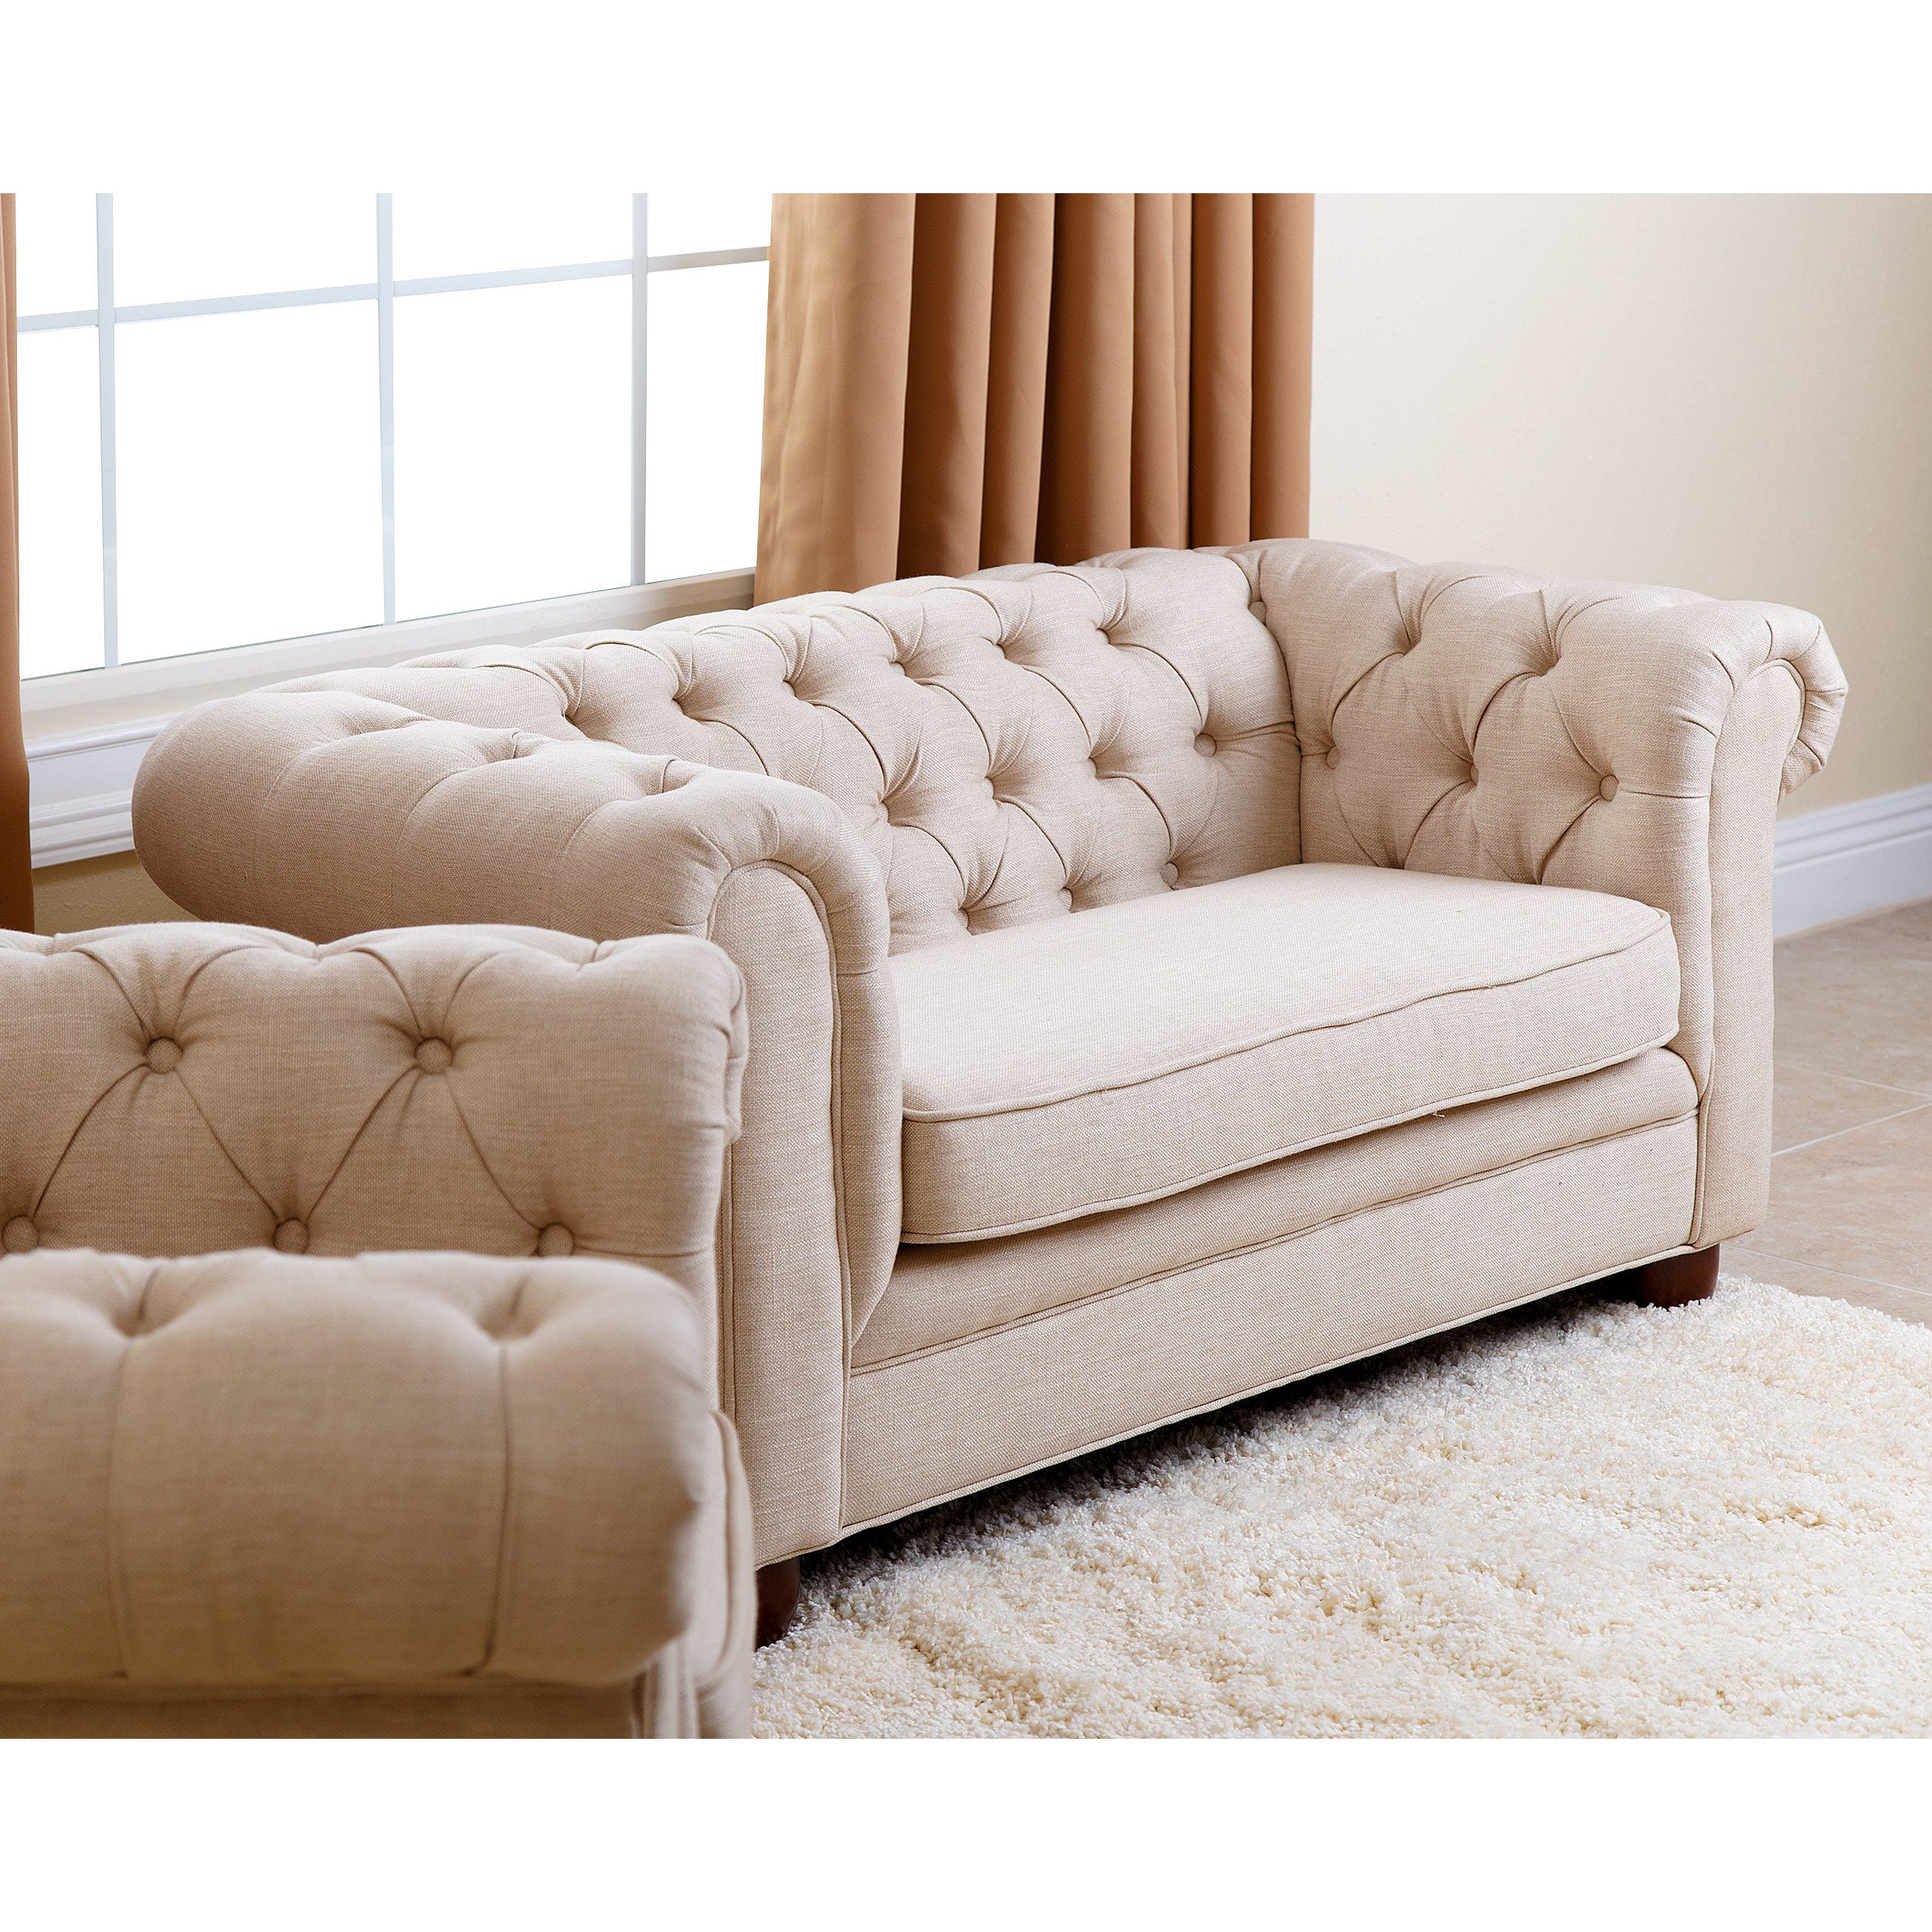 overstock today free sized abbyson sofa antique living mini shipping product garden home kid couch kids velvet rj brown chesterfield